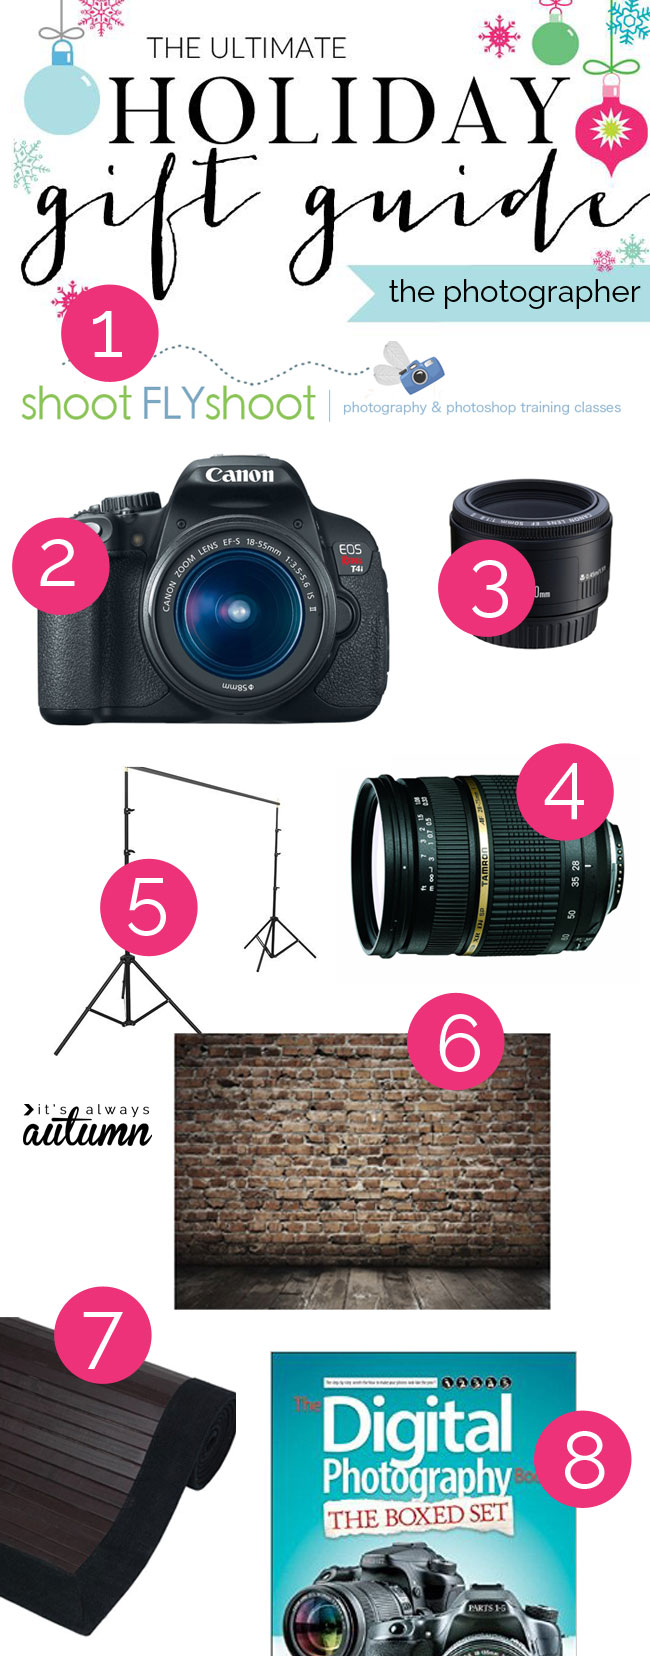 great gift guide for the aspiring photographer plus a photography lover's giveaway! I'm putting some of these gift ideas on my Christmas list.